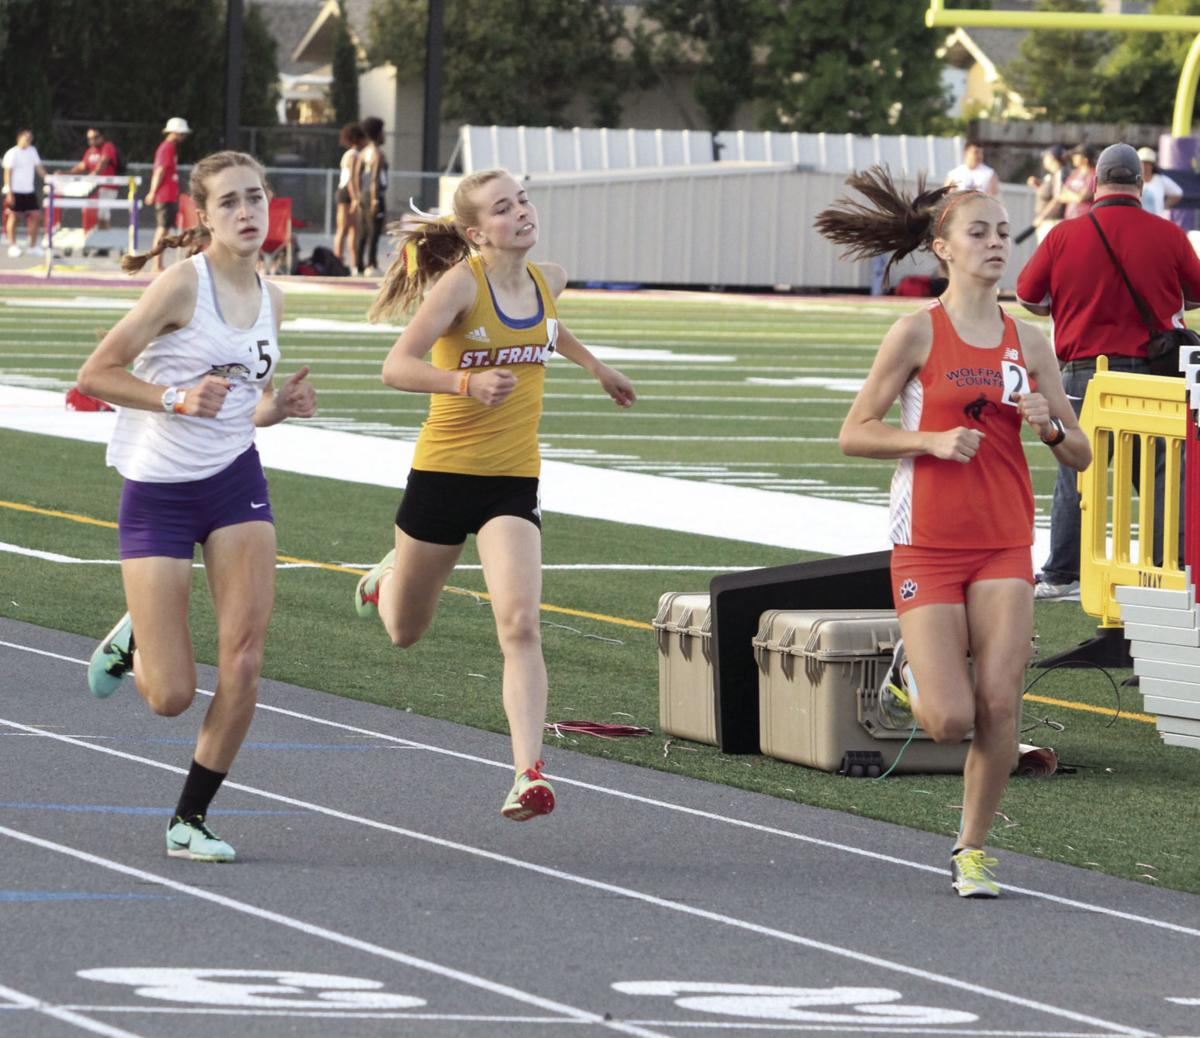 Athlete of the week: Strategy paying off for Anema